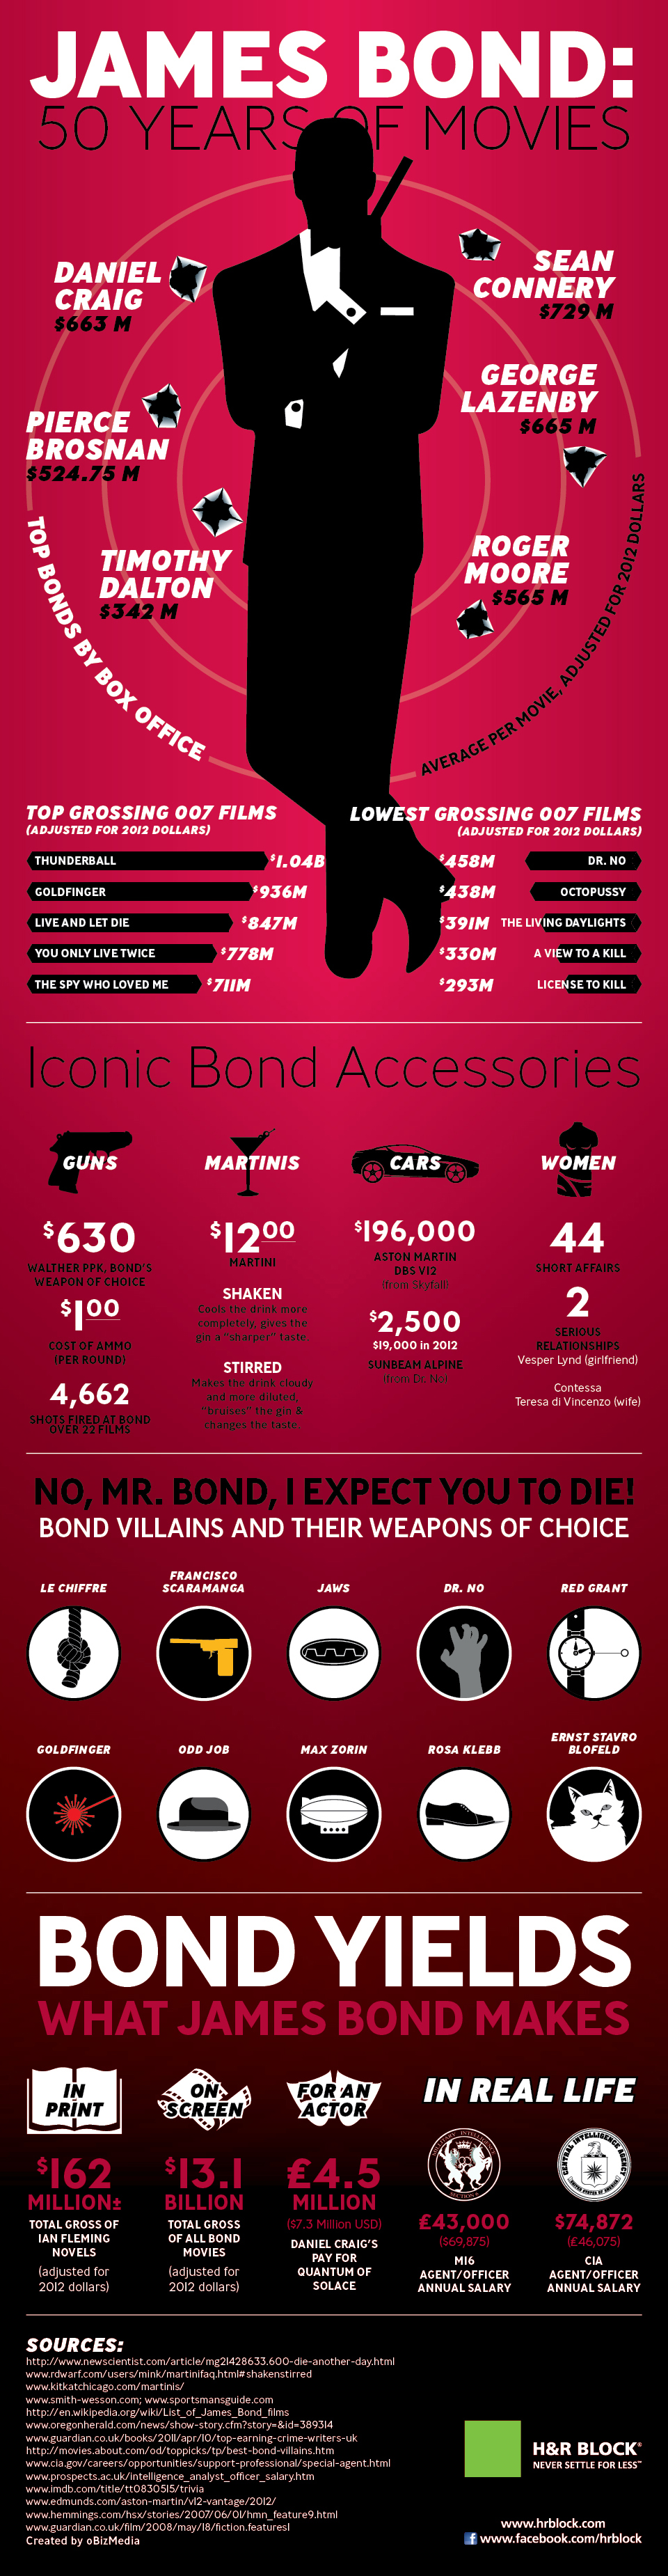 James-Bond-50-Years-of-Movies-infographic-plaza